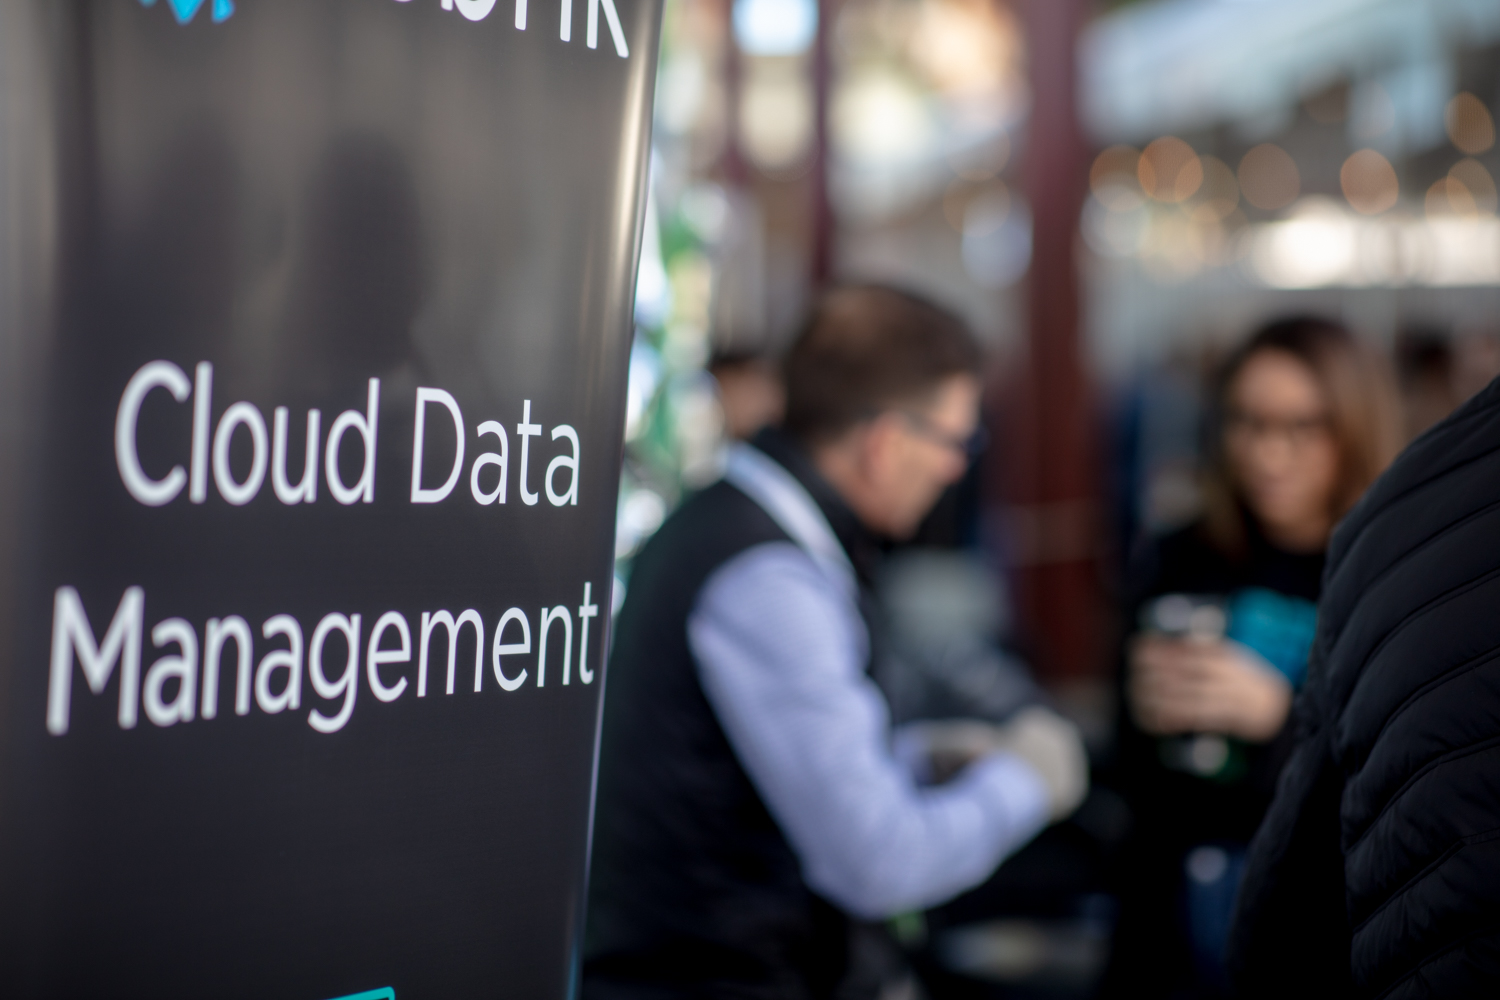 Dasher Technologies cloud data management